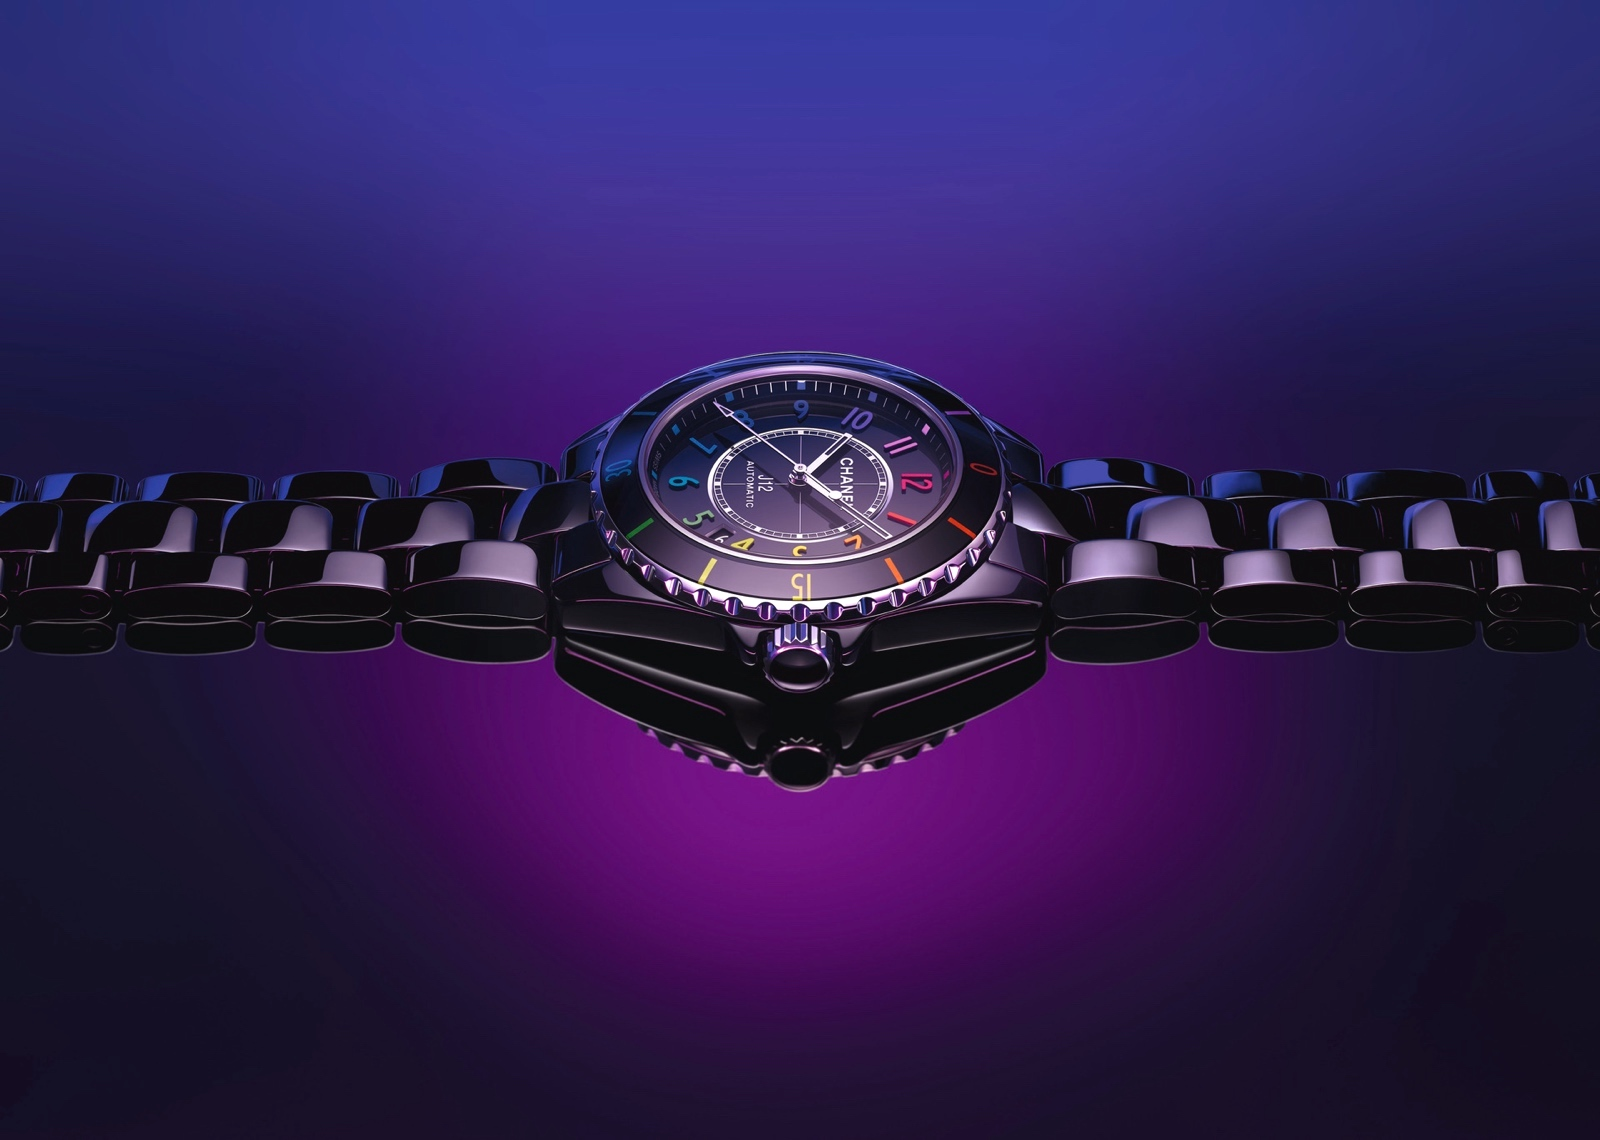 Chanel en Watches and Wonders 2021 - J12 Electro